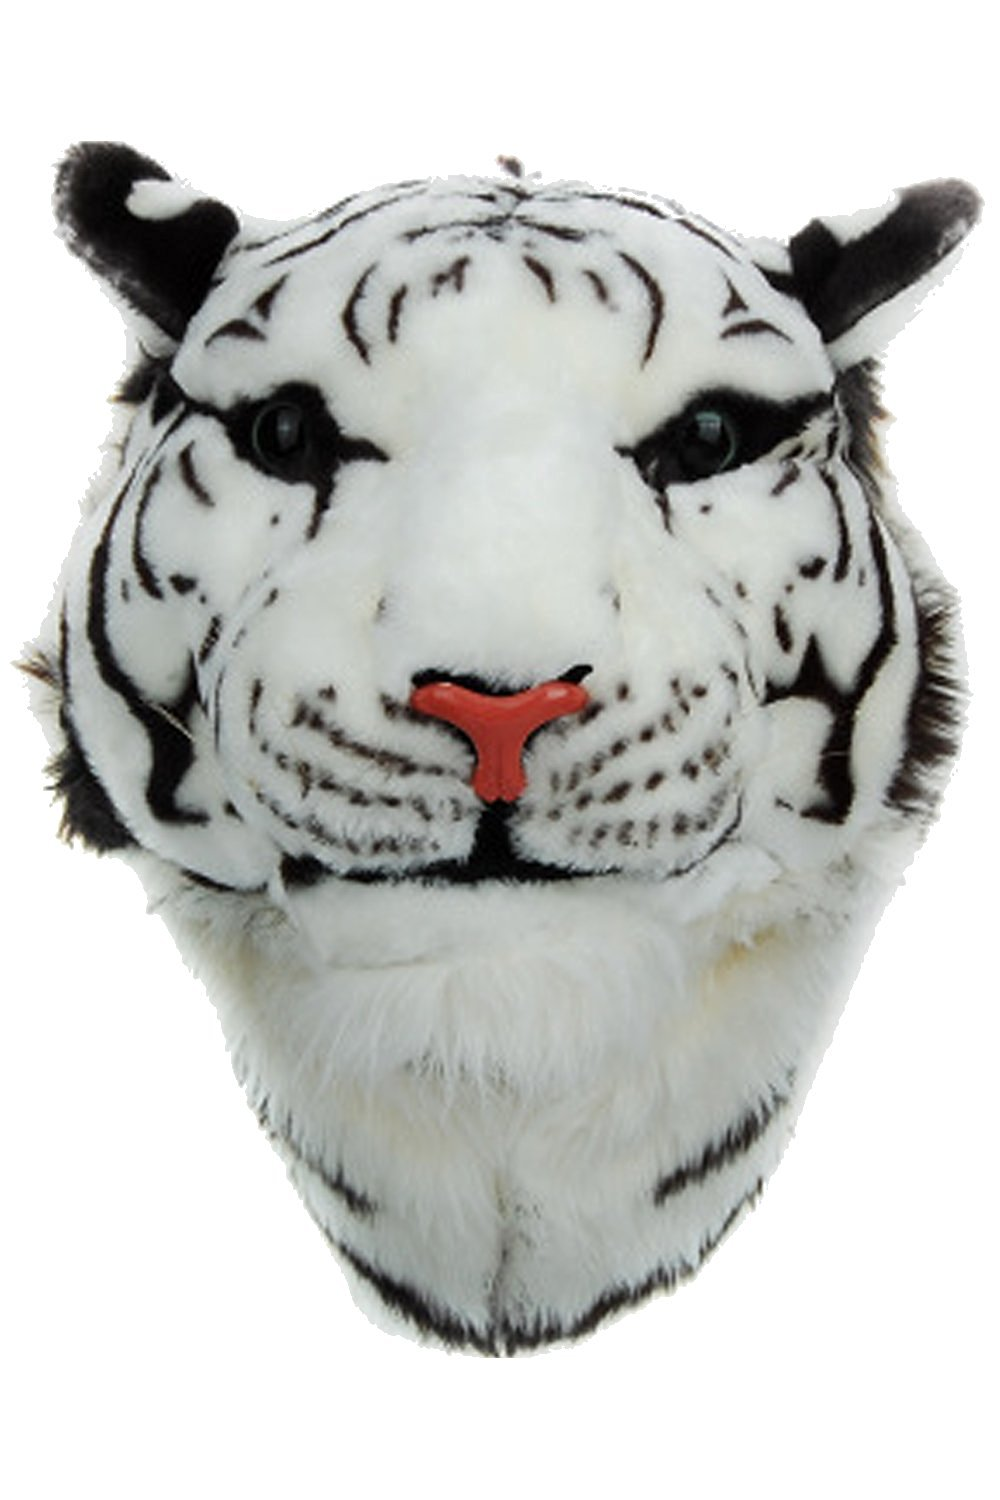 fa1f9e386f Get Quotations · Boomtrader Plush Toy Backpack Tiger Dome Head Backpack  Children Gift Siberian Tiger Head Backpack